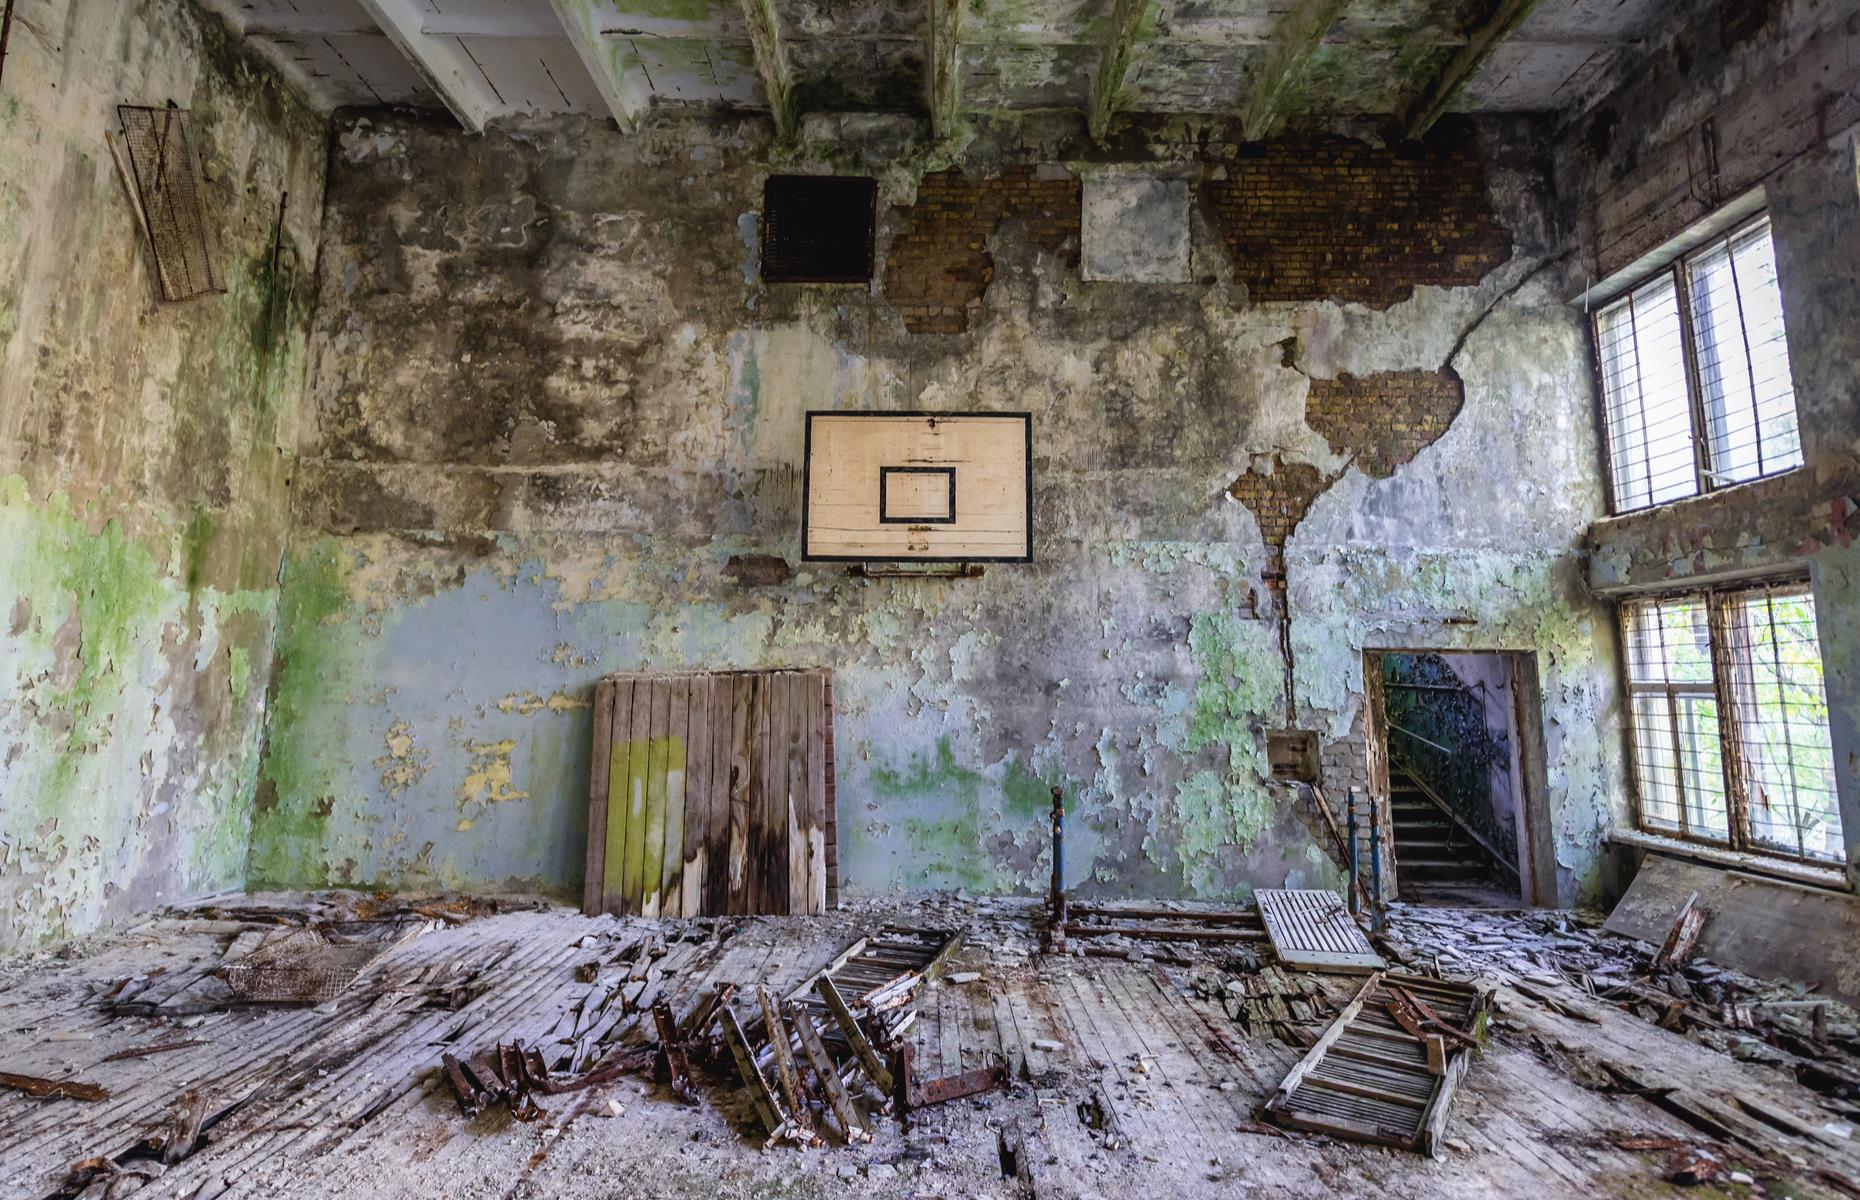 Slide 50 of 51: Crumbling walls, cracked wooden floors and parts of a basketball hoop are all that's left of this gym in the exclusion zone. The ruin is one of many abandoned buildings in the area.